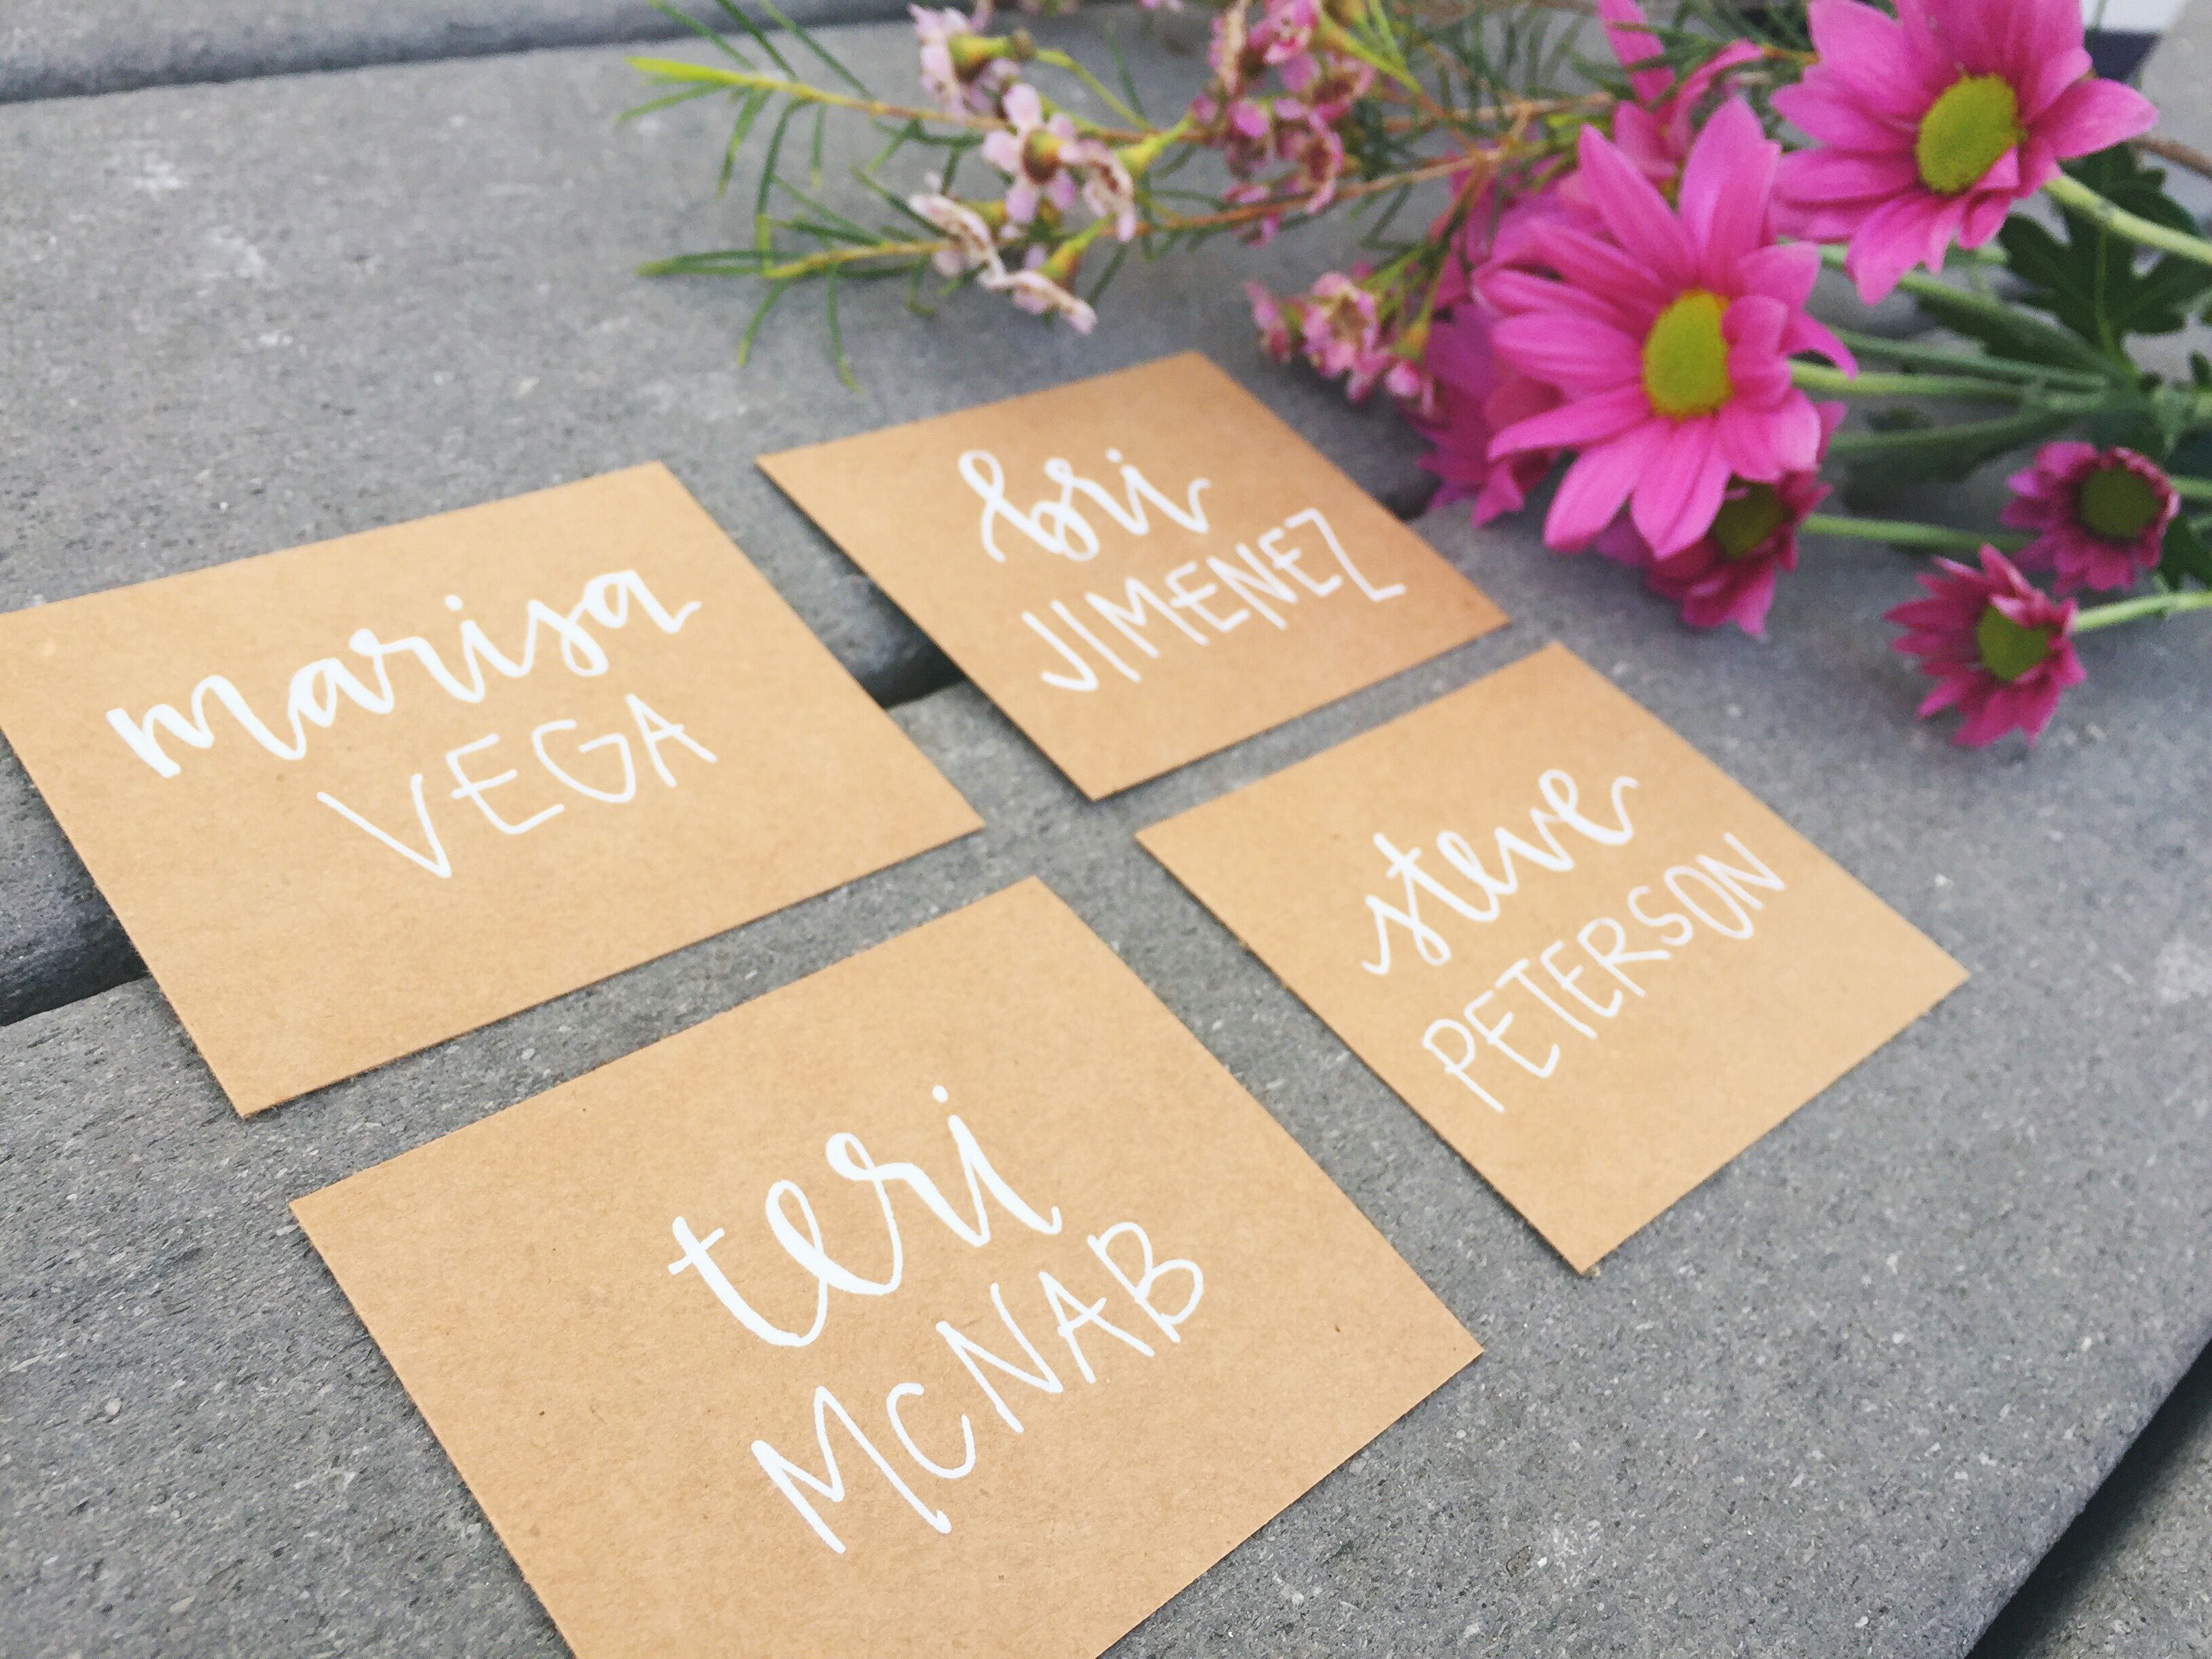 Nice Dinner Party Name Ideas Part - 7: PLACE CARD WEDDING DECOR IDEAS || Wedding Place Cards - Tent Fold - Escort  Card - Black Calligraphy With Kraft Paper - Bride Groom - Dinner Party -  Name Tag ...